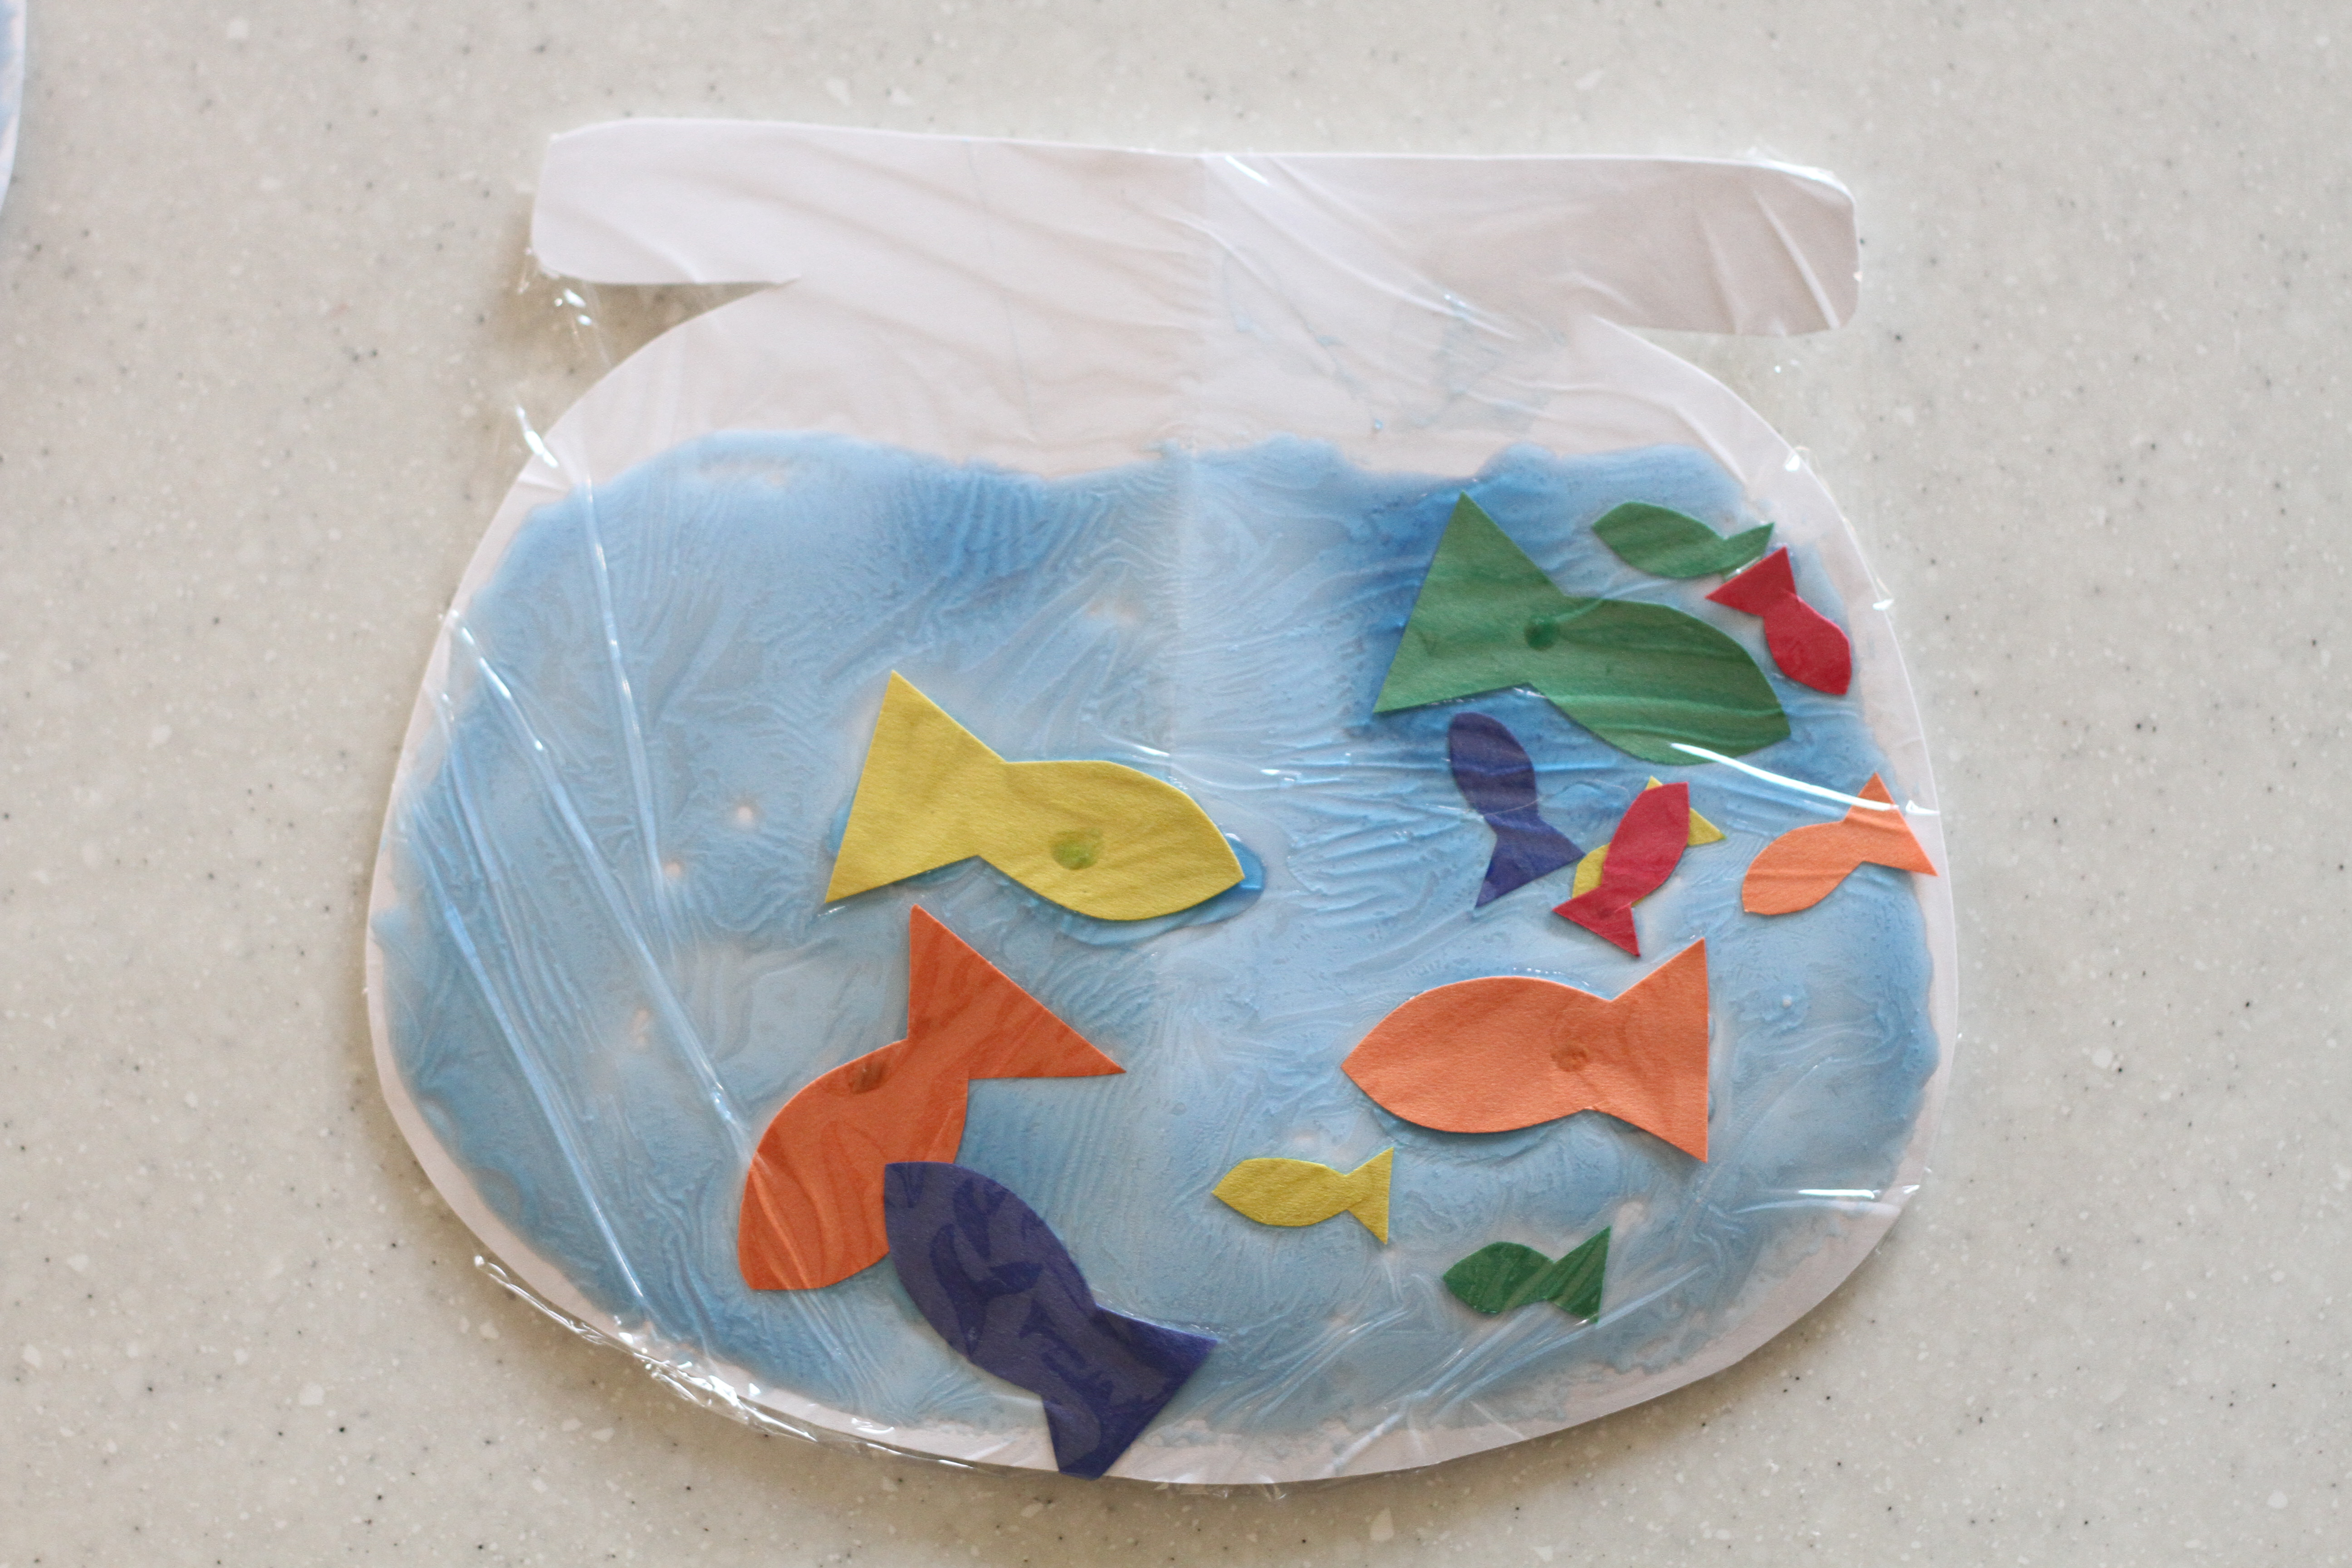 Fishbowl craft one fish two fish red fish blue fish for Red fish blue fish